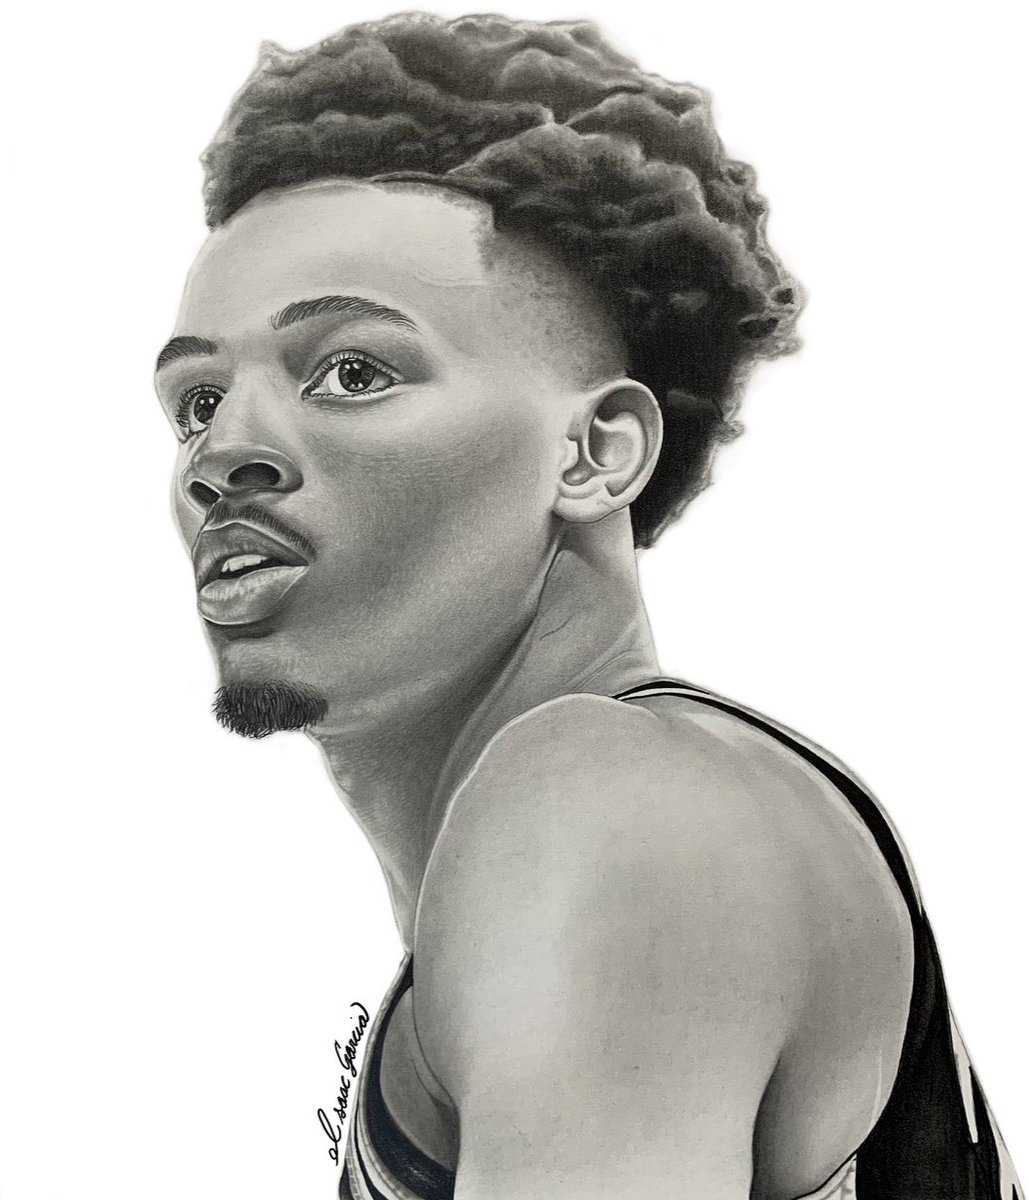 Thank you to all my @spurs fam for the love on these drawings and to everyone who supports my art and what I do. Who should I add to the list and draw next? #GoSpursGo <br>http://pic.twitter.com/9yG8qdavlb